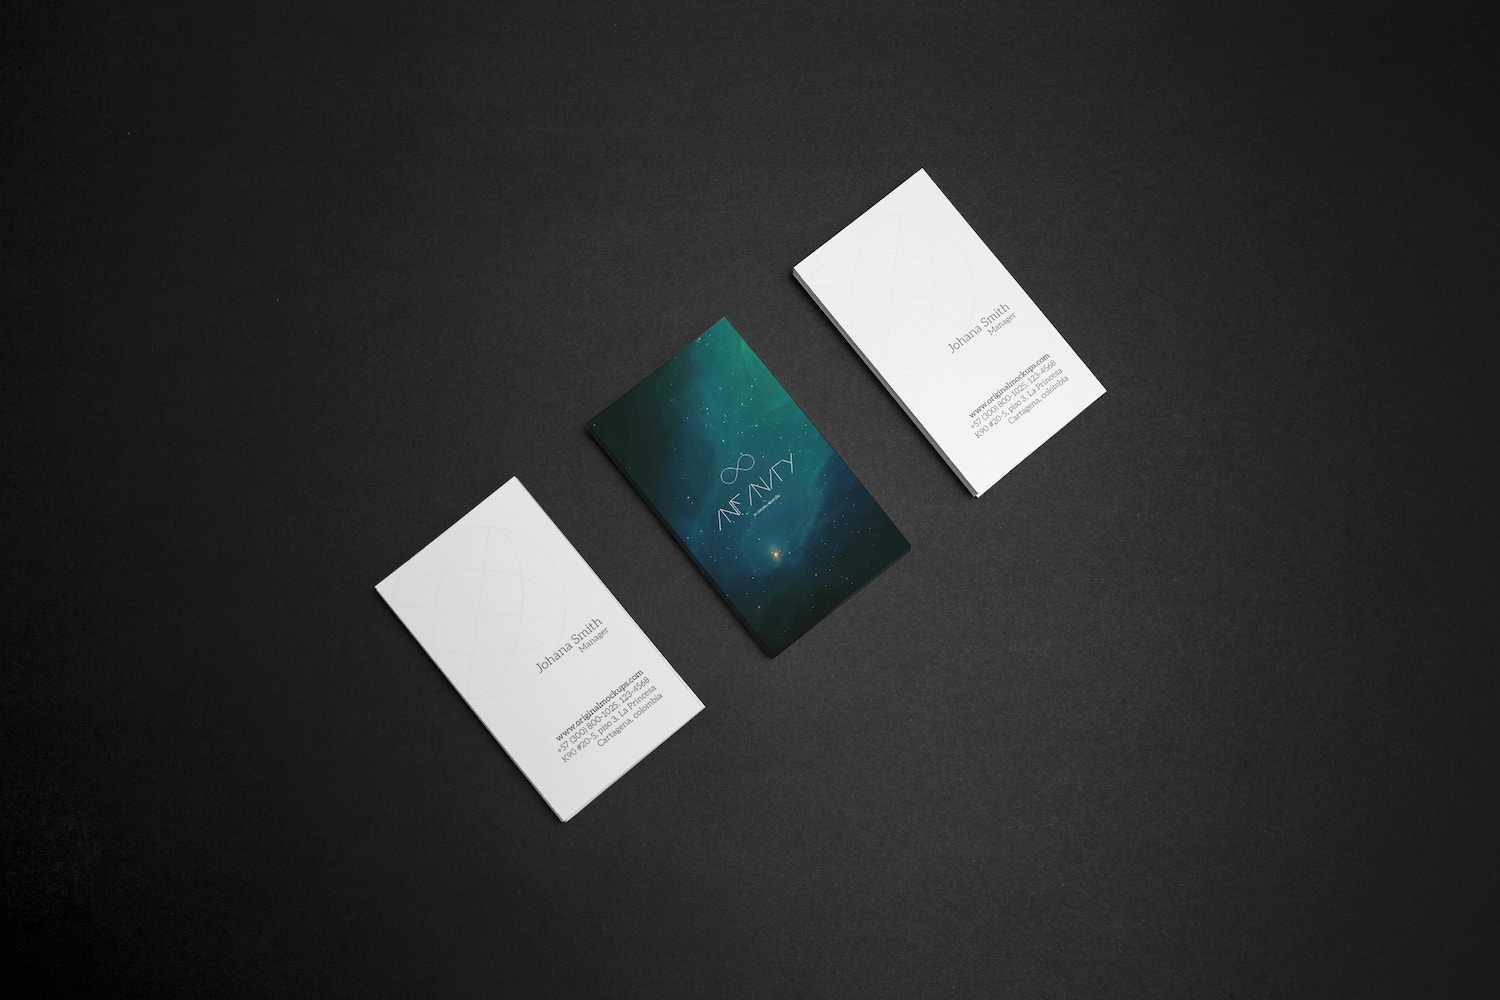 Business Card Mockup 6 by Original Mockups on Original Mockups